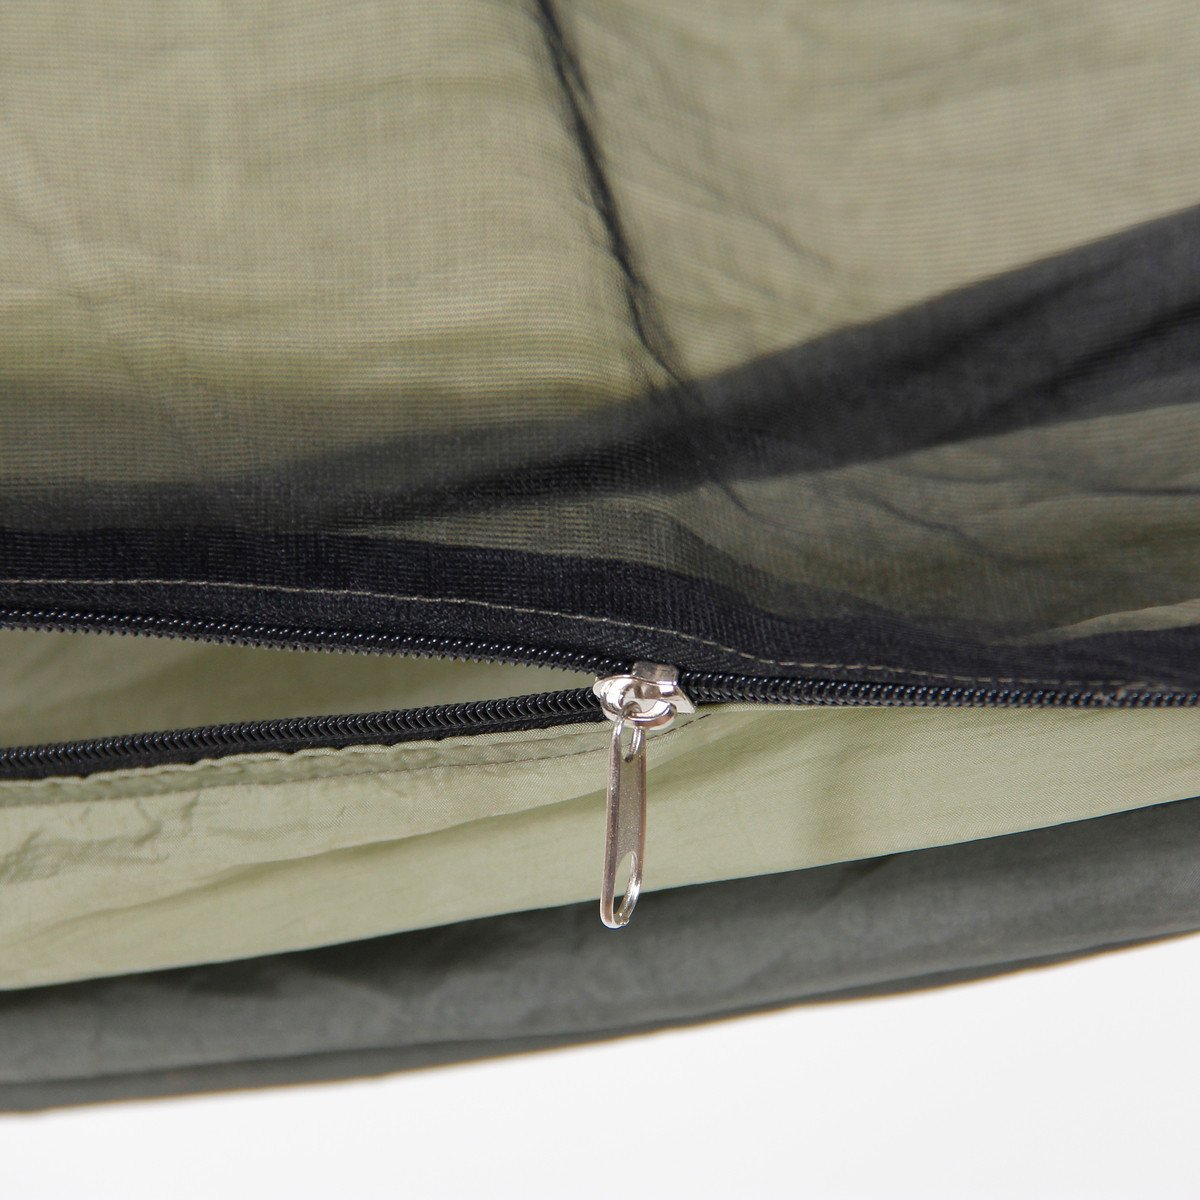 amazon    moskito kakoon mosquito   camping hammock by byer of maine  sports  u0026 outdoors amazon    moskito kakoon mosquito   camping hammock by byer      rh   amazon